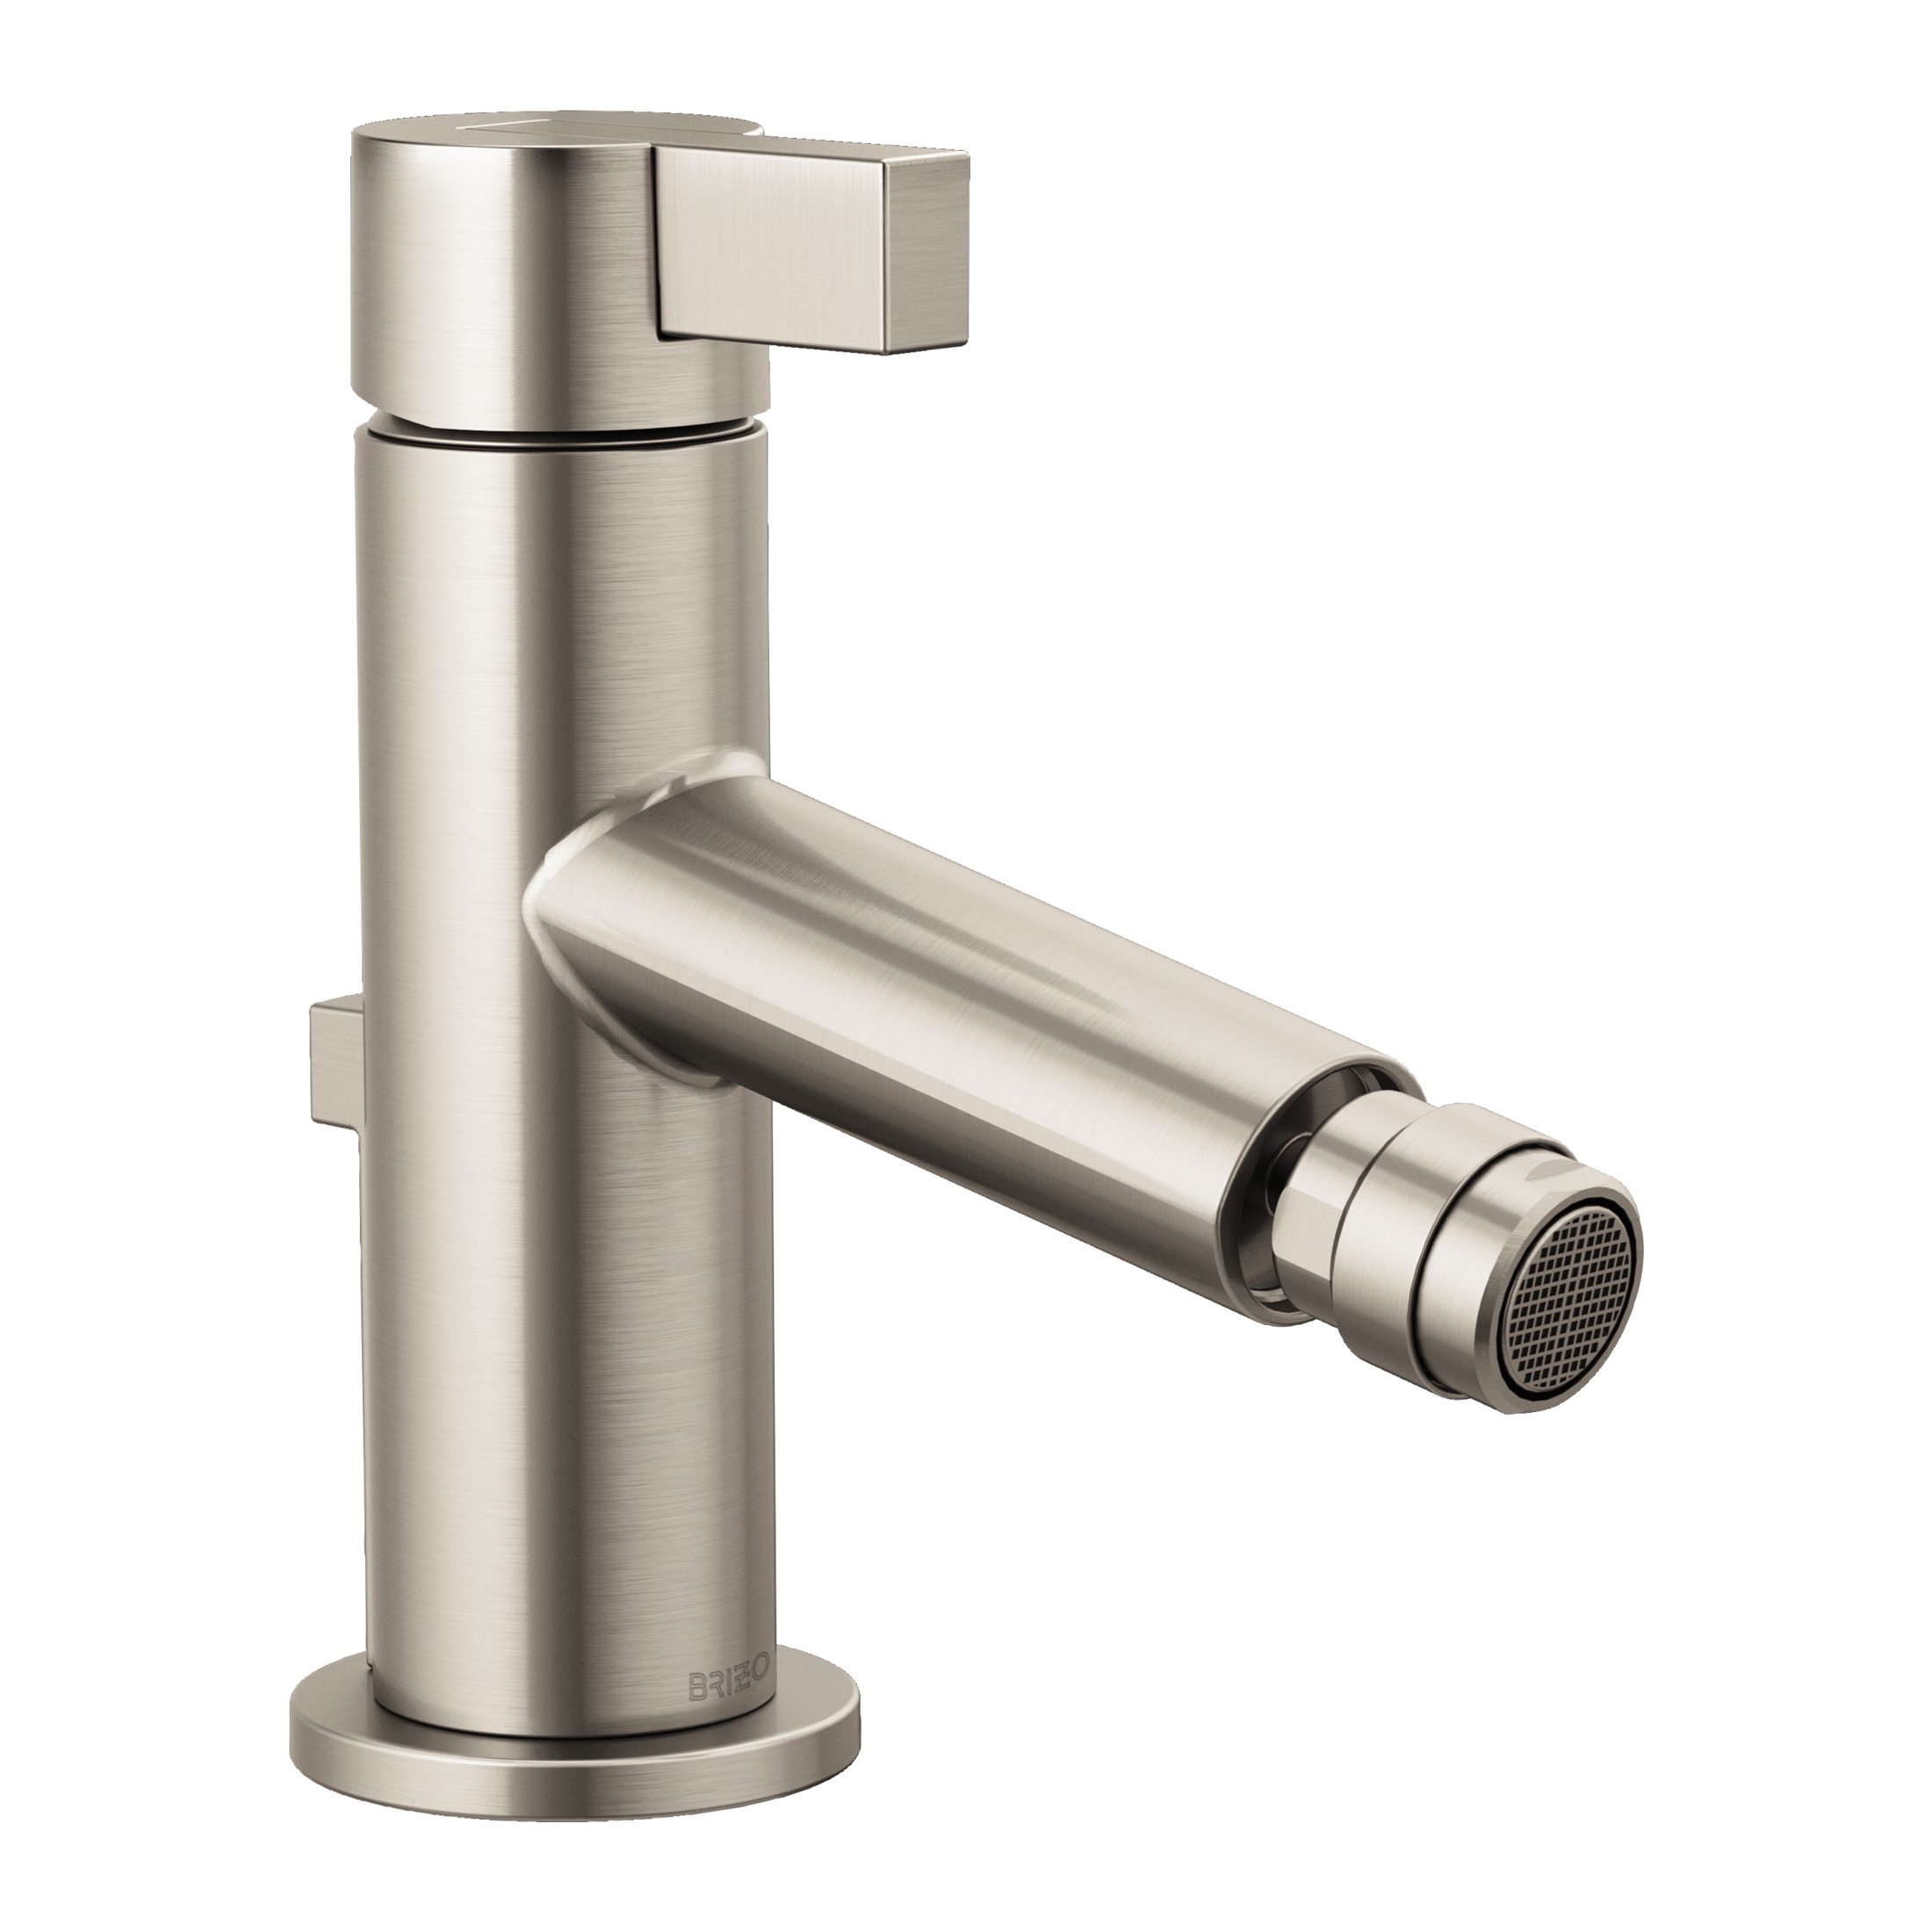 Brizo® 68135-NK Litze™ Bidet Faucet, 2-1/2 in H Spout, 1 Handle, Pop-Up Drain, Luxe Nickel, Import, Commercial